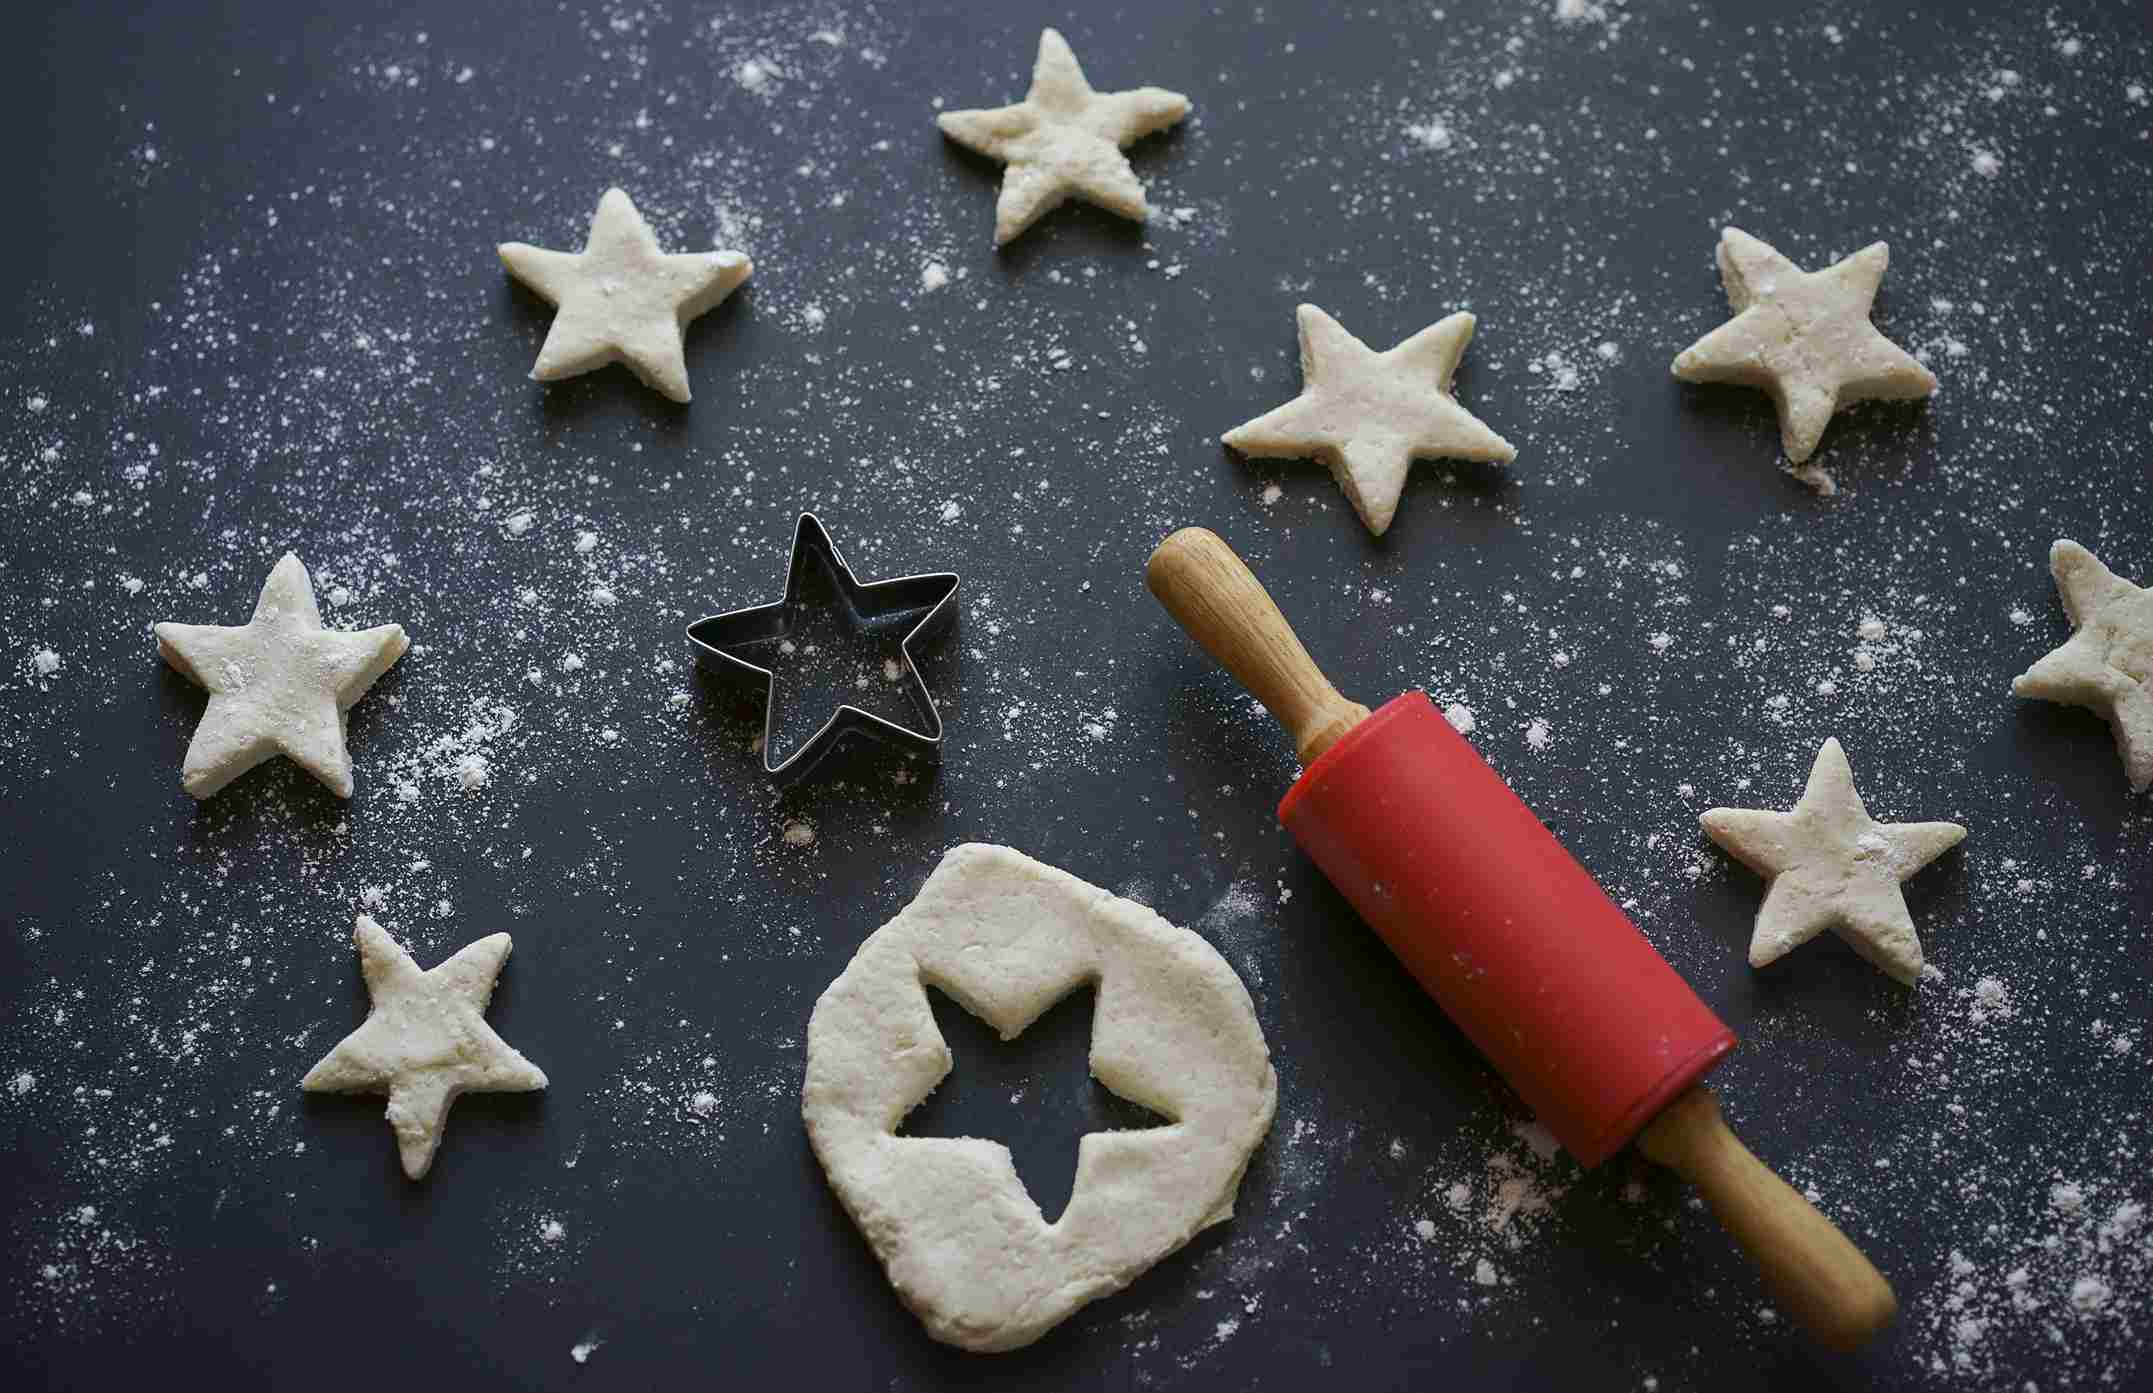 Cookie dough cut into stars with cookie cutting tools